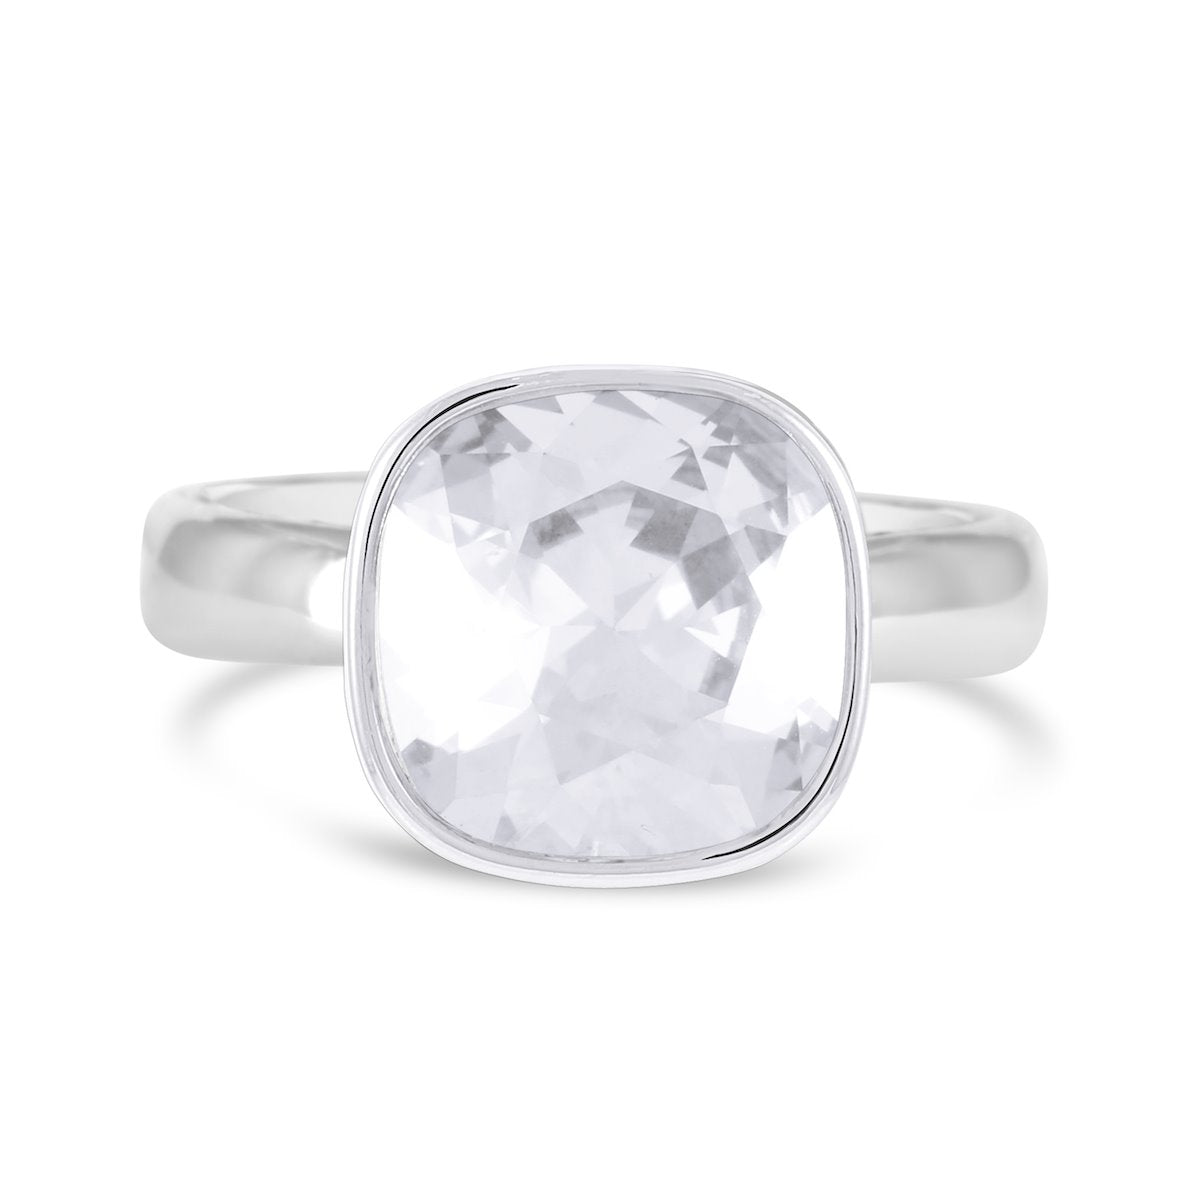 CUSHION SOLITAIRE RING MOONLIGHT ESSENTIALS FOREVER CRYSTALS